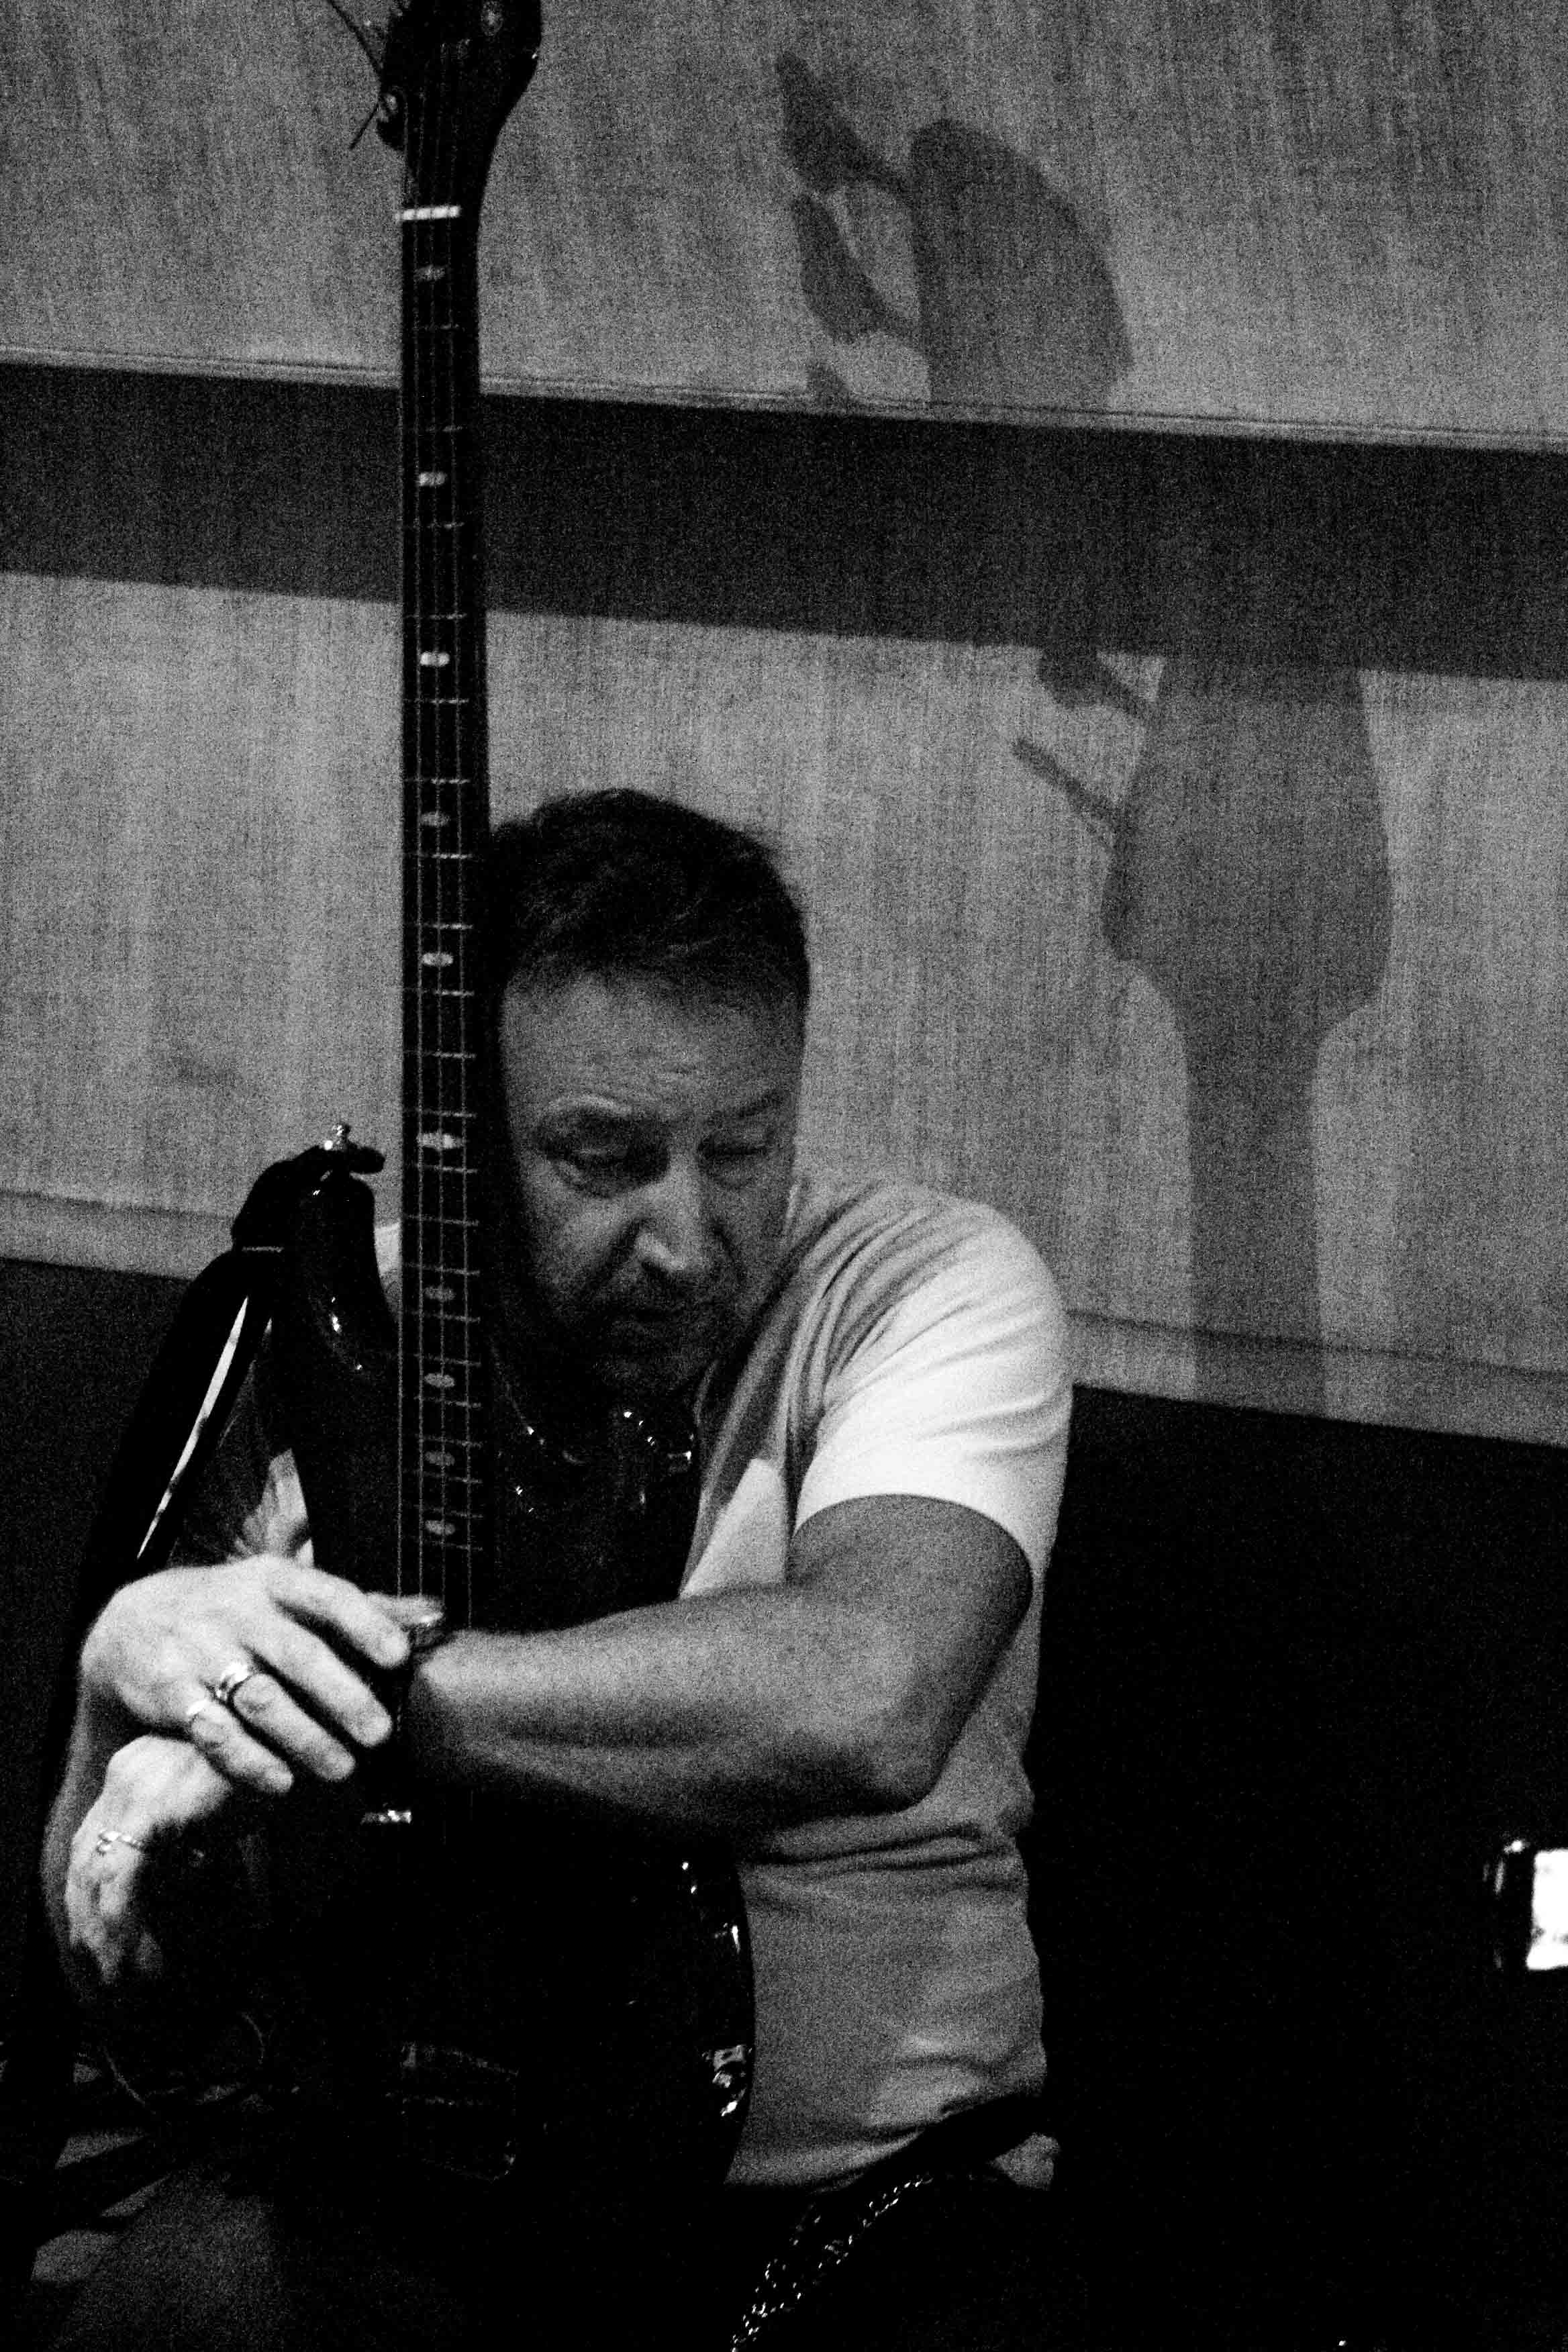 Peter Hook of Joy Division and New Order